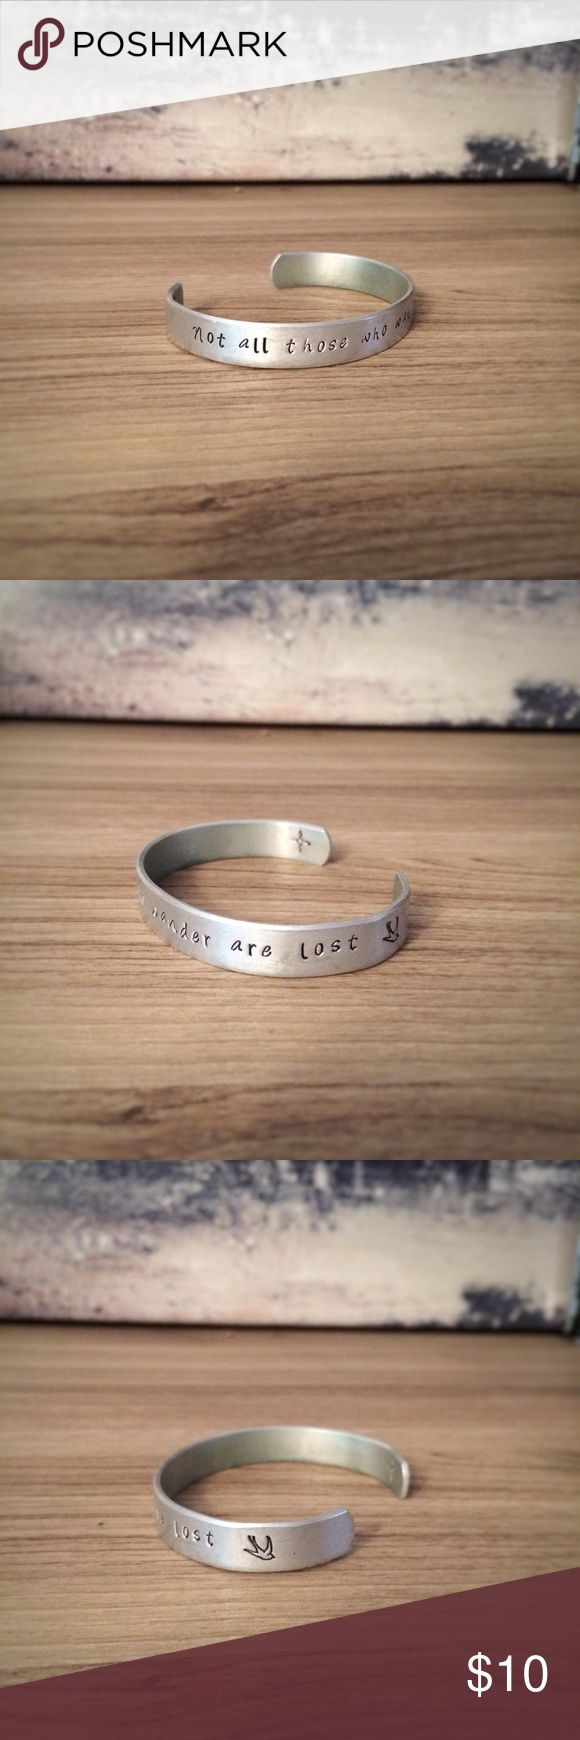 Hand Stamped bracelet with bird stamp and compass Lord of the Rings - The fellowship of the Ring - Not all those who wander are lost Hand Stamped bracelet with bird stamp and compass  Cuff is 6 inches long and 3/8 wide  The cuff is a bright silver tone and made of Pure High Grade Aluminum 1100, which is safe on your skin. There is a much lower rate of skin reaction with PURE ALUMINUM than with sterling silver. It is lightweight, but very sturdy and is sure to become your new favorite…